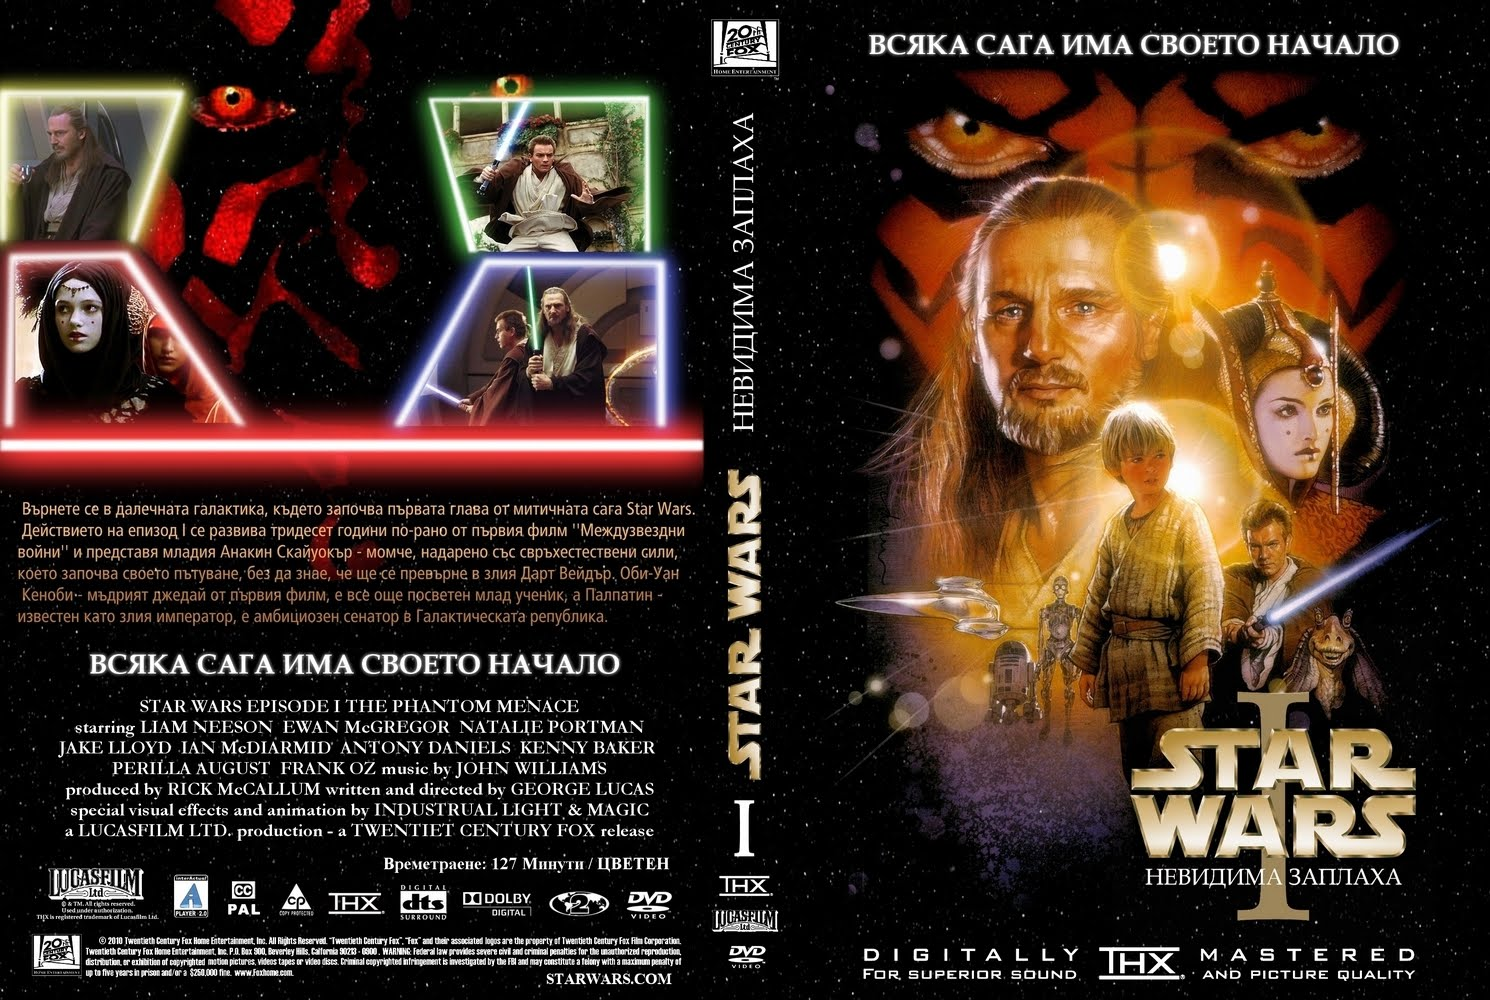 star wars episode 1 dvd cover. Black Bedroom Furniture Sets. Home Design Ideas